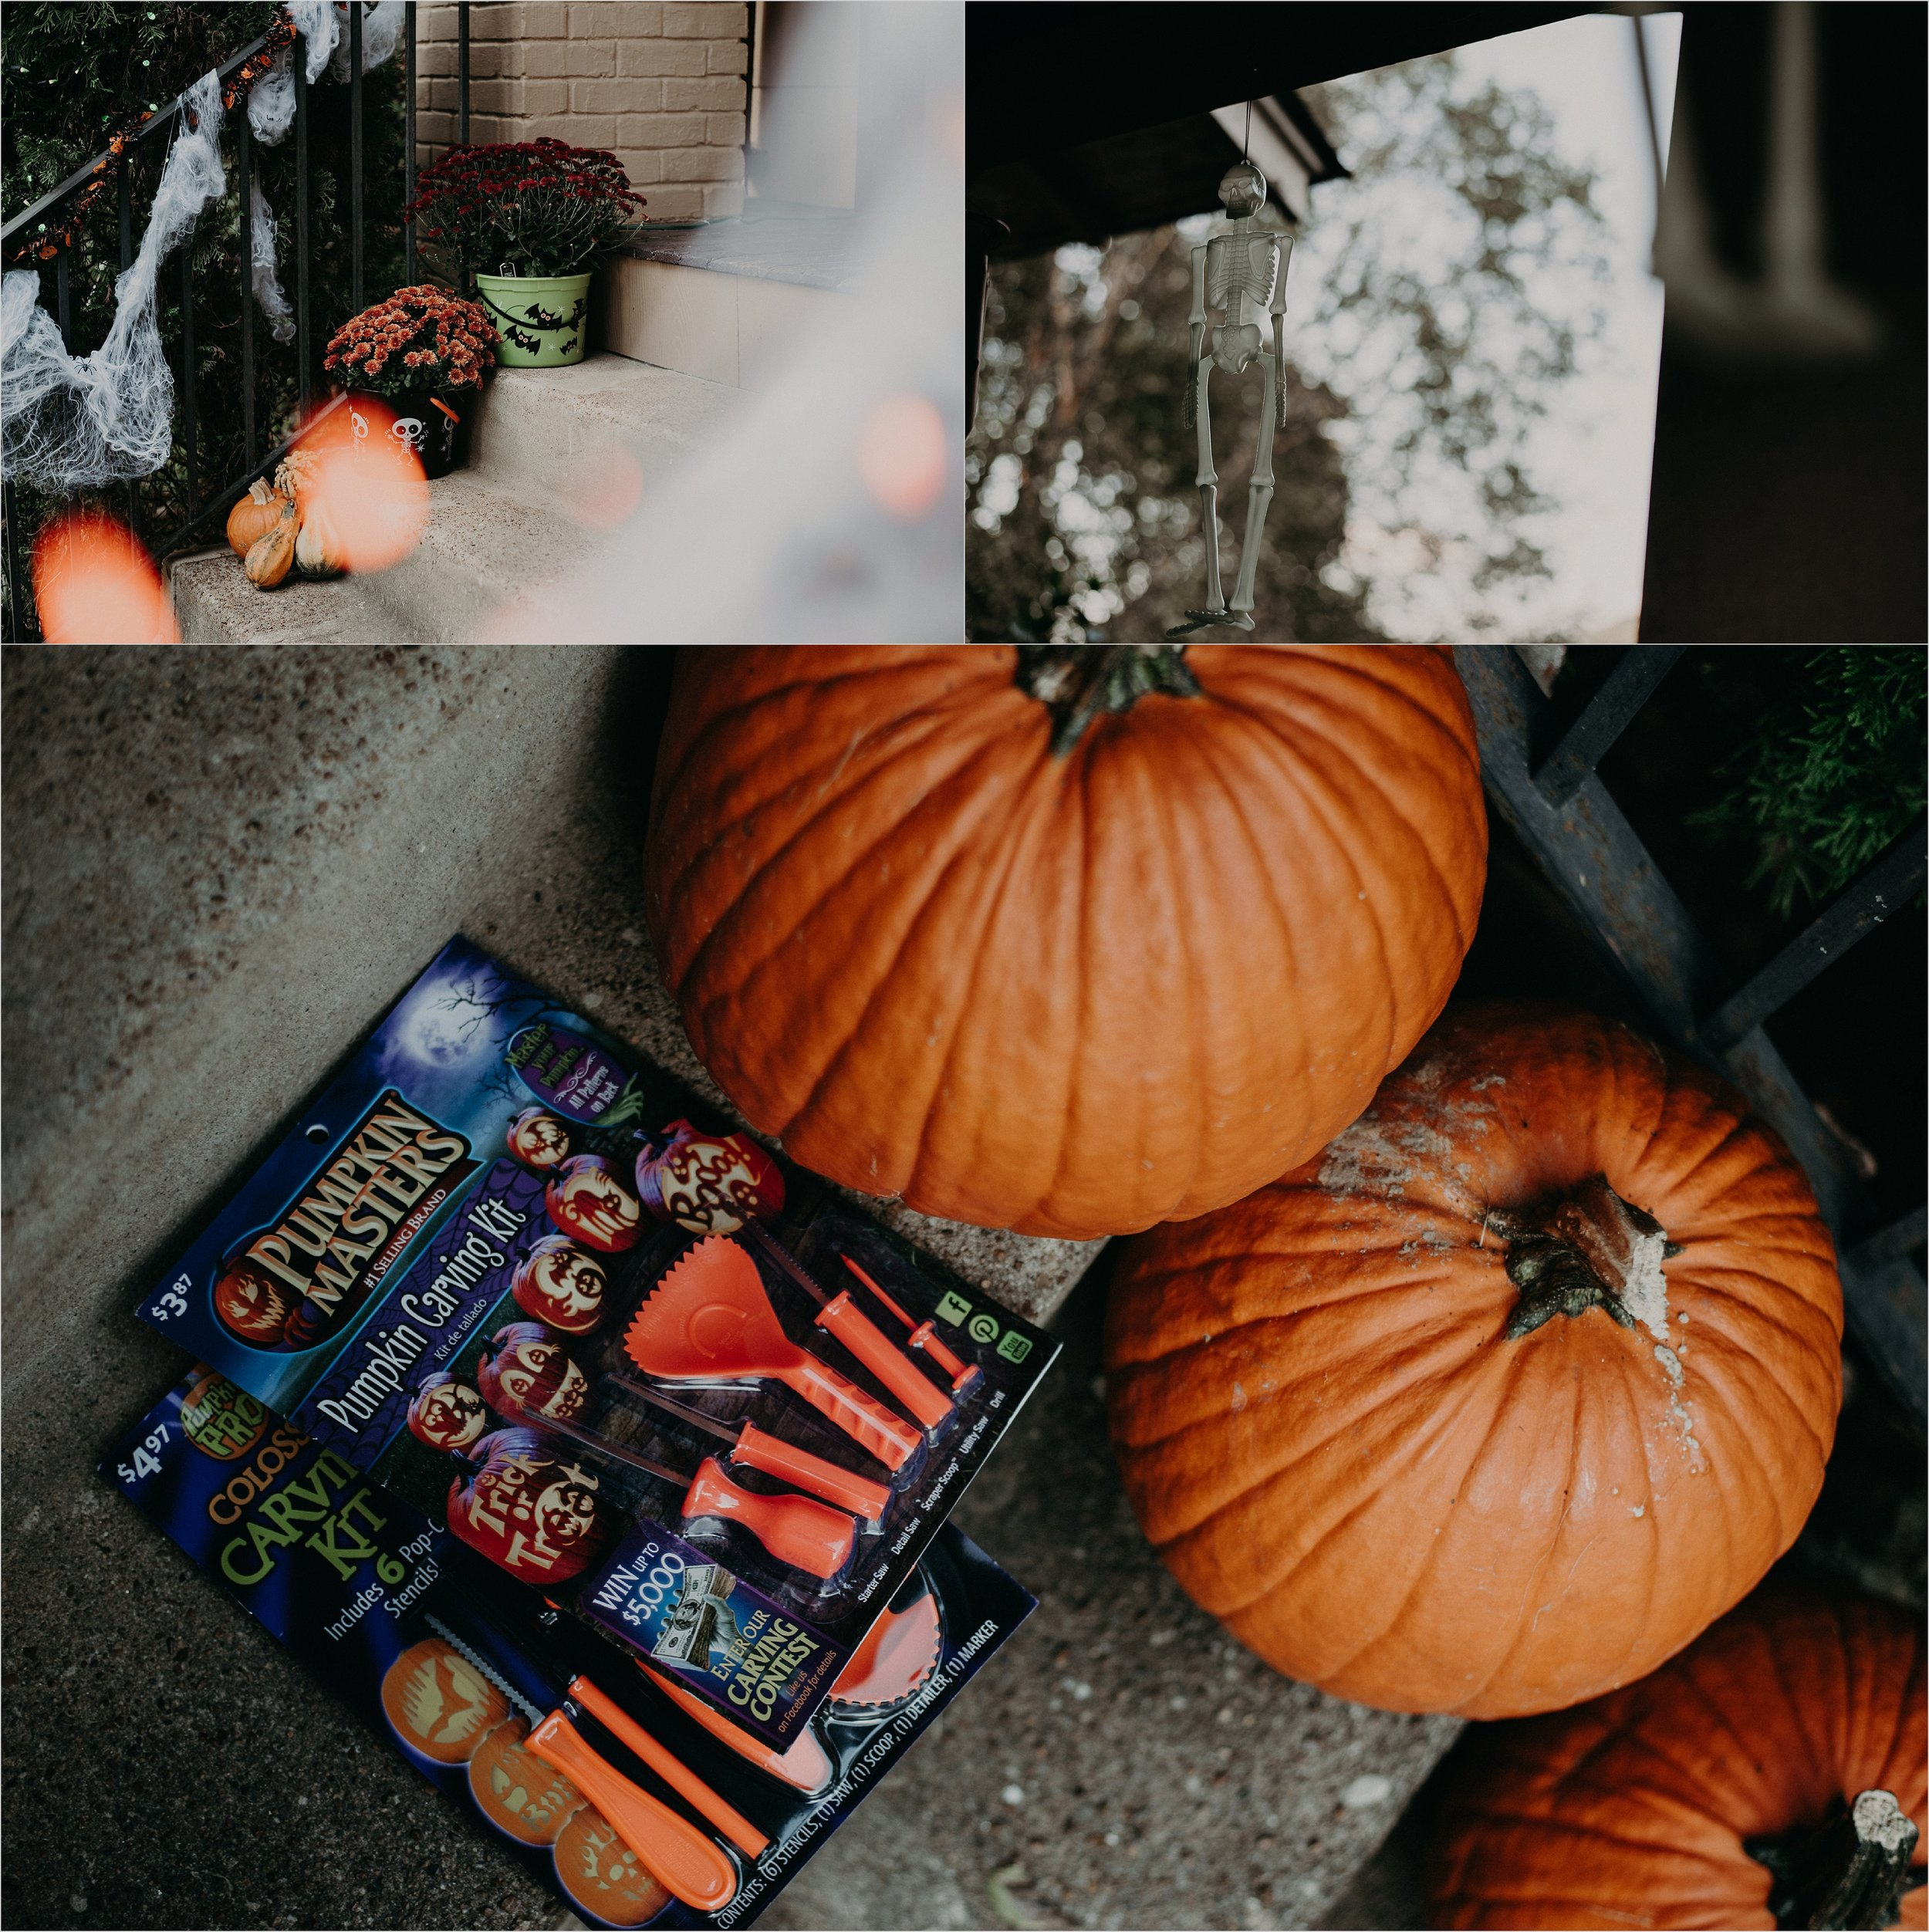 Taylor_English_Photography_Pumpkin_Carving_Chattanooga_Tennessee_0003.jpg